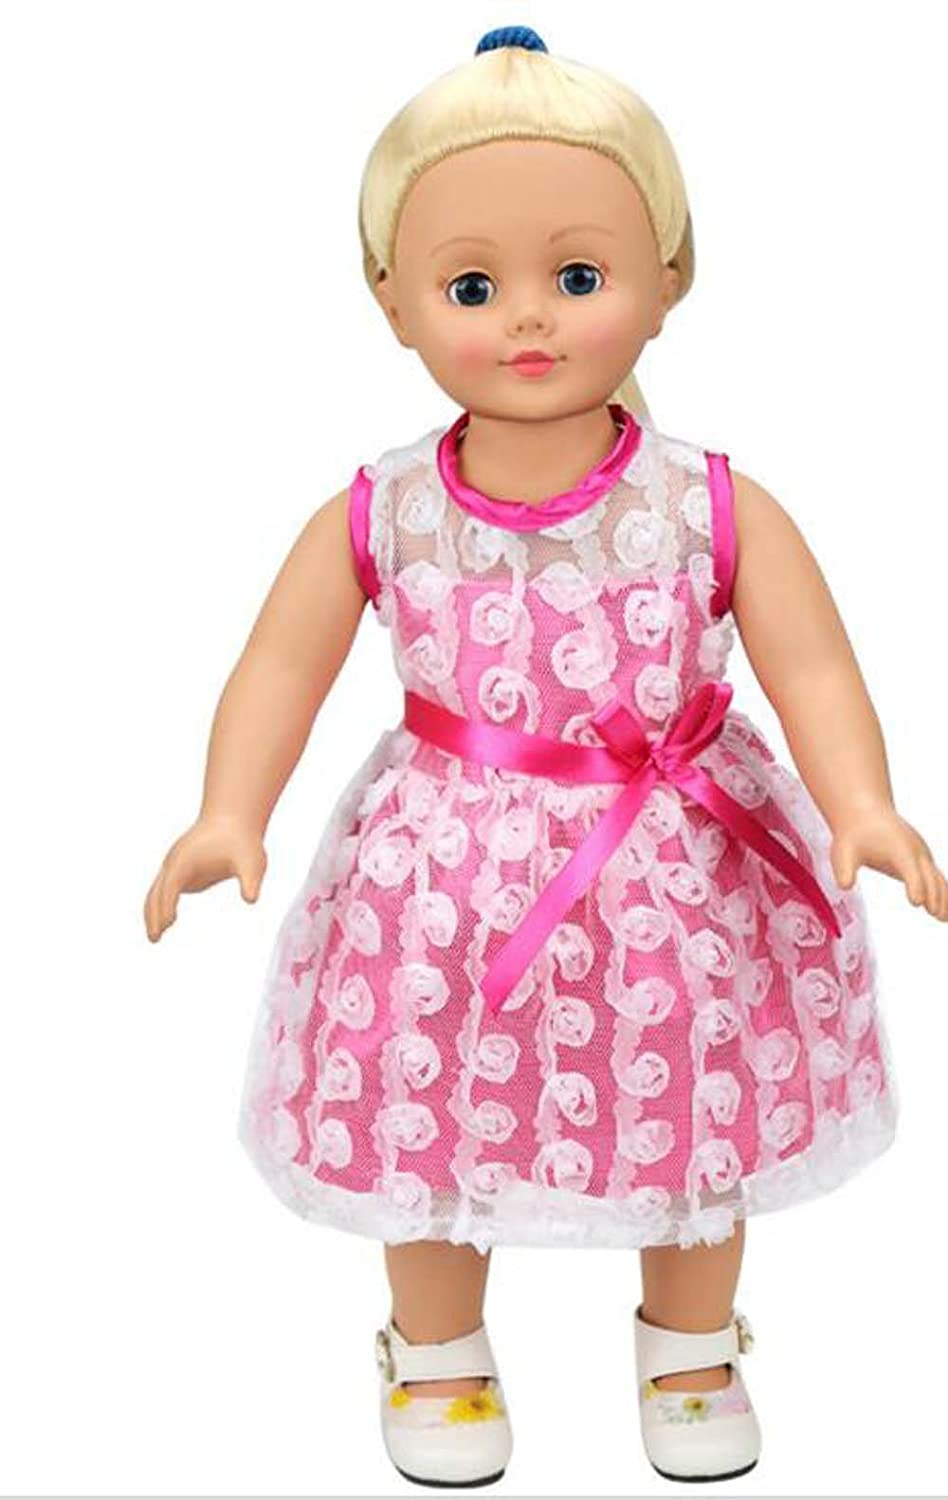 American Girl Bitty Baby Pink Rose Dress Outfit Shoes Headband-Brand New